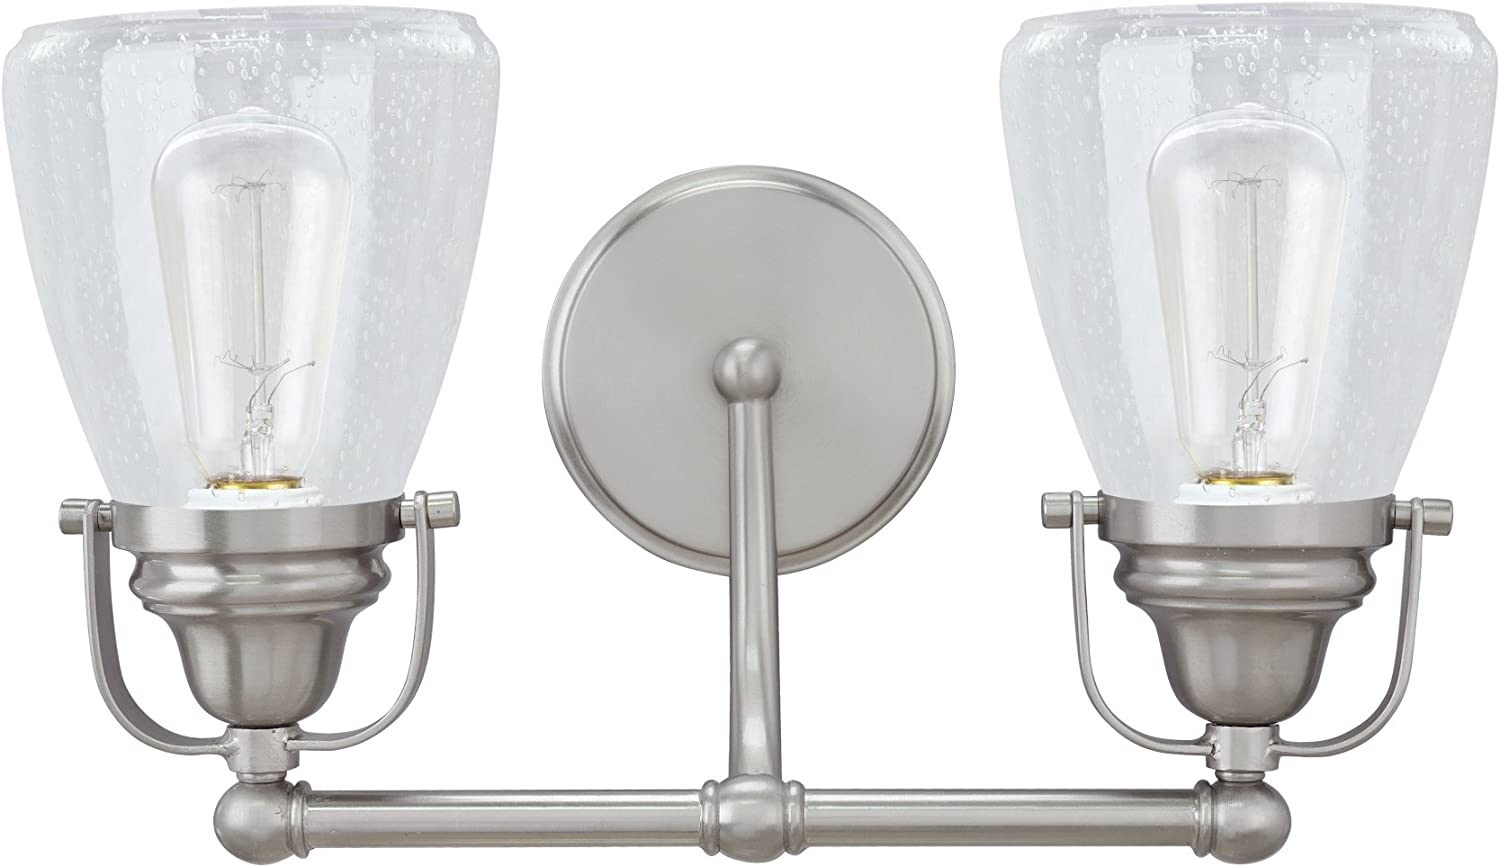 Transitional Design in Brushed Nickel with Clear Seedy Glass Shade 15 3//4 Wide Two-Light Metal Bathroom Vanity Wall Light Fixture Aspen Creative 62098